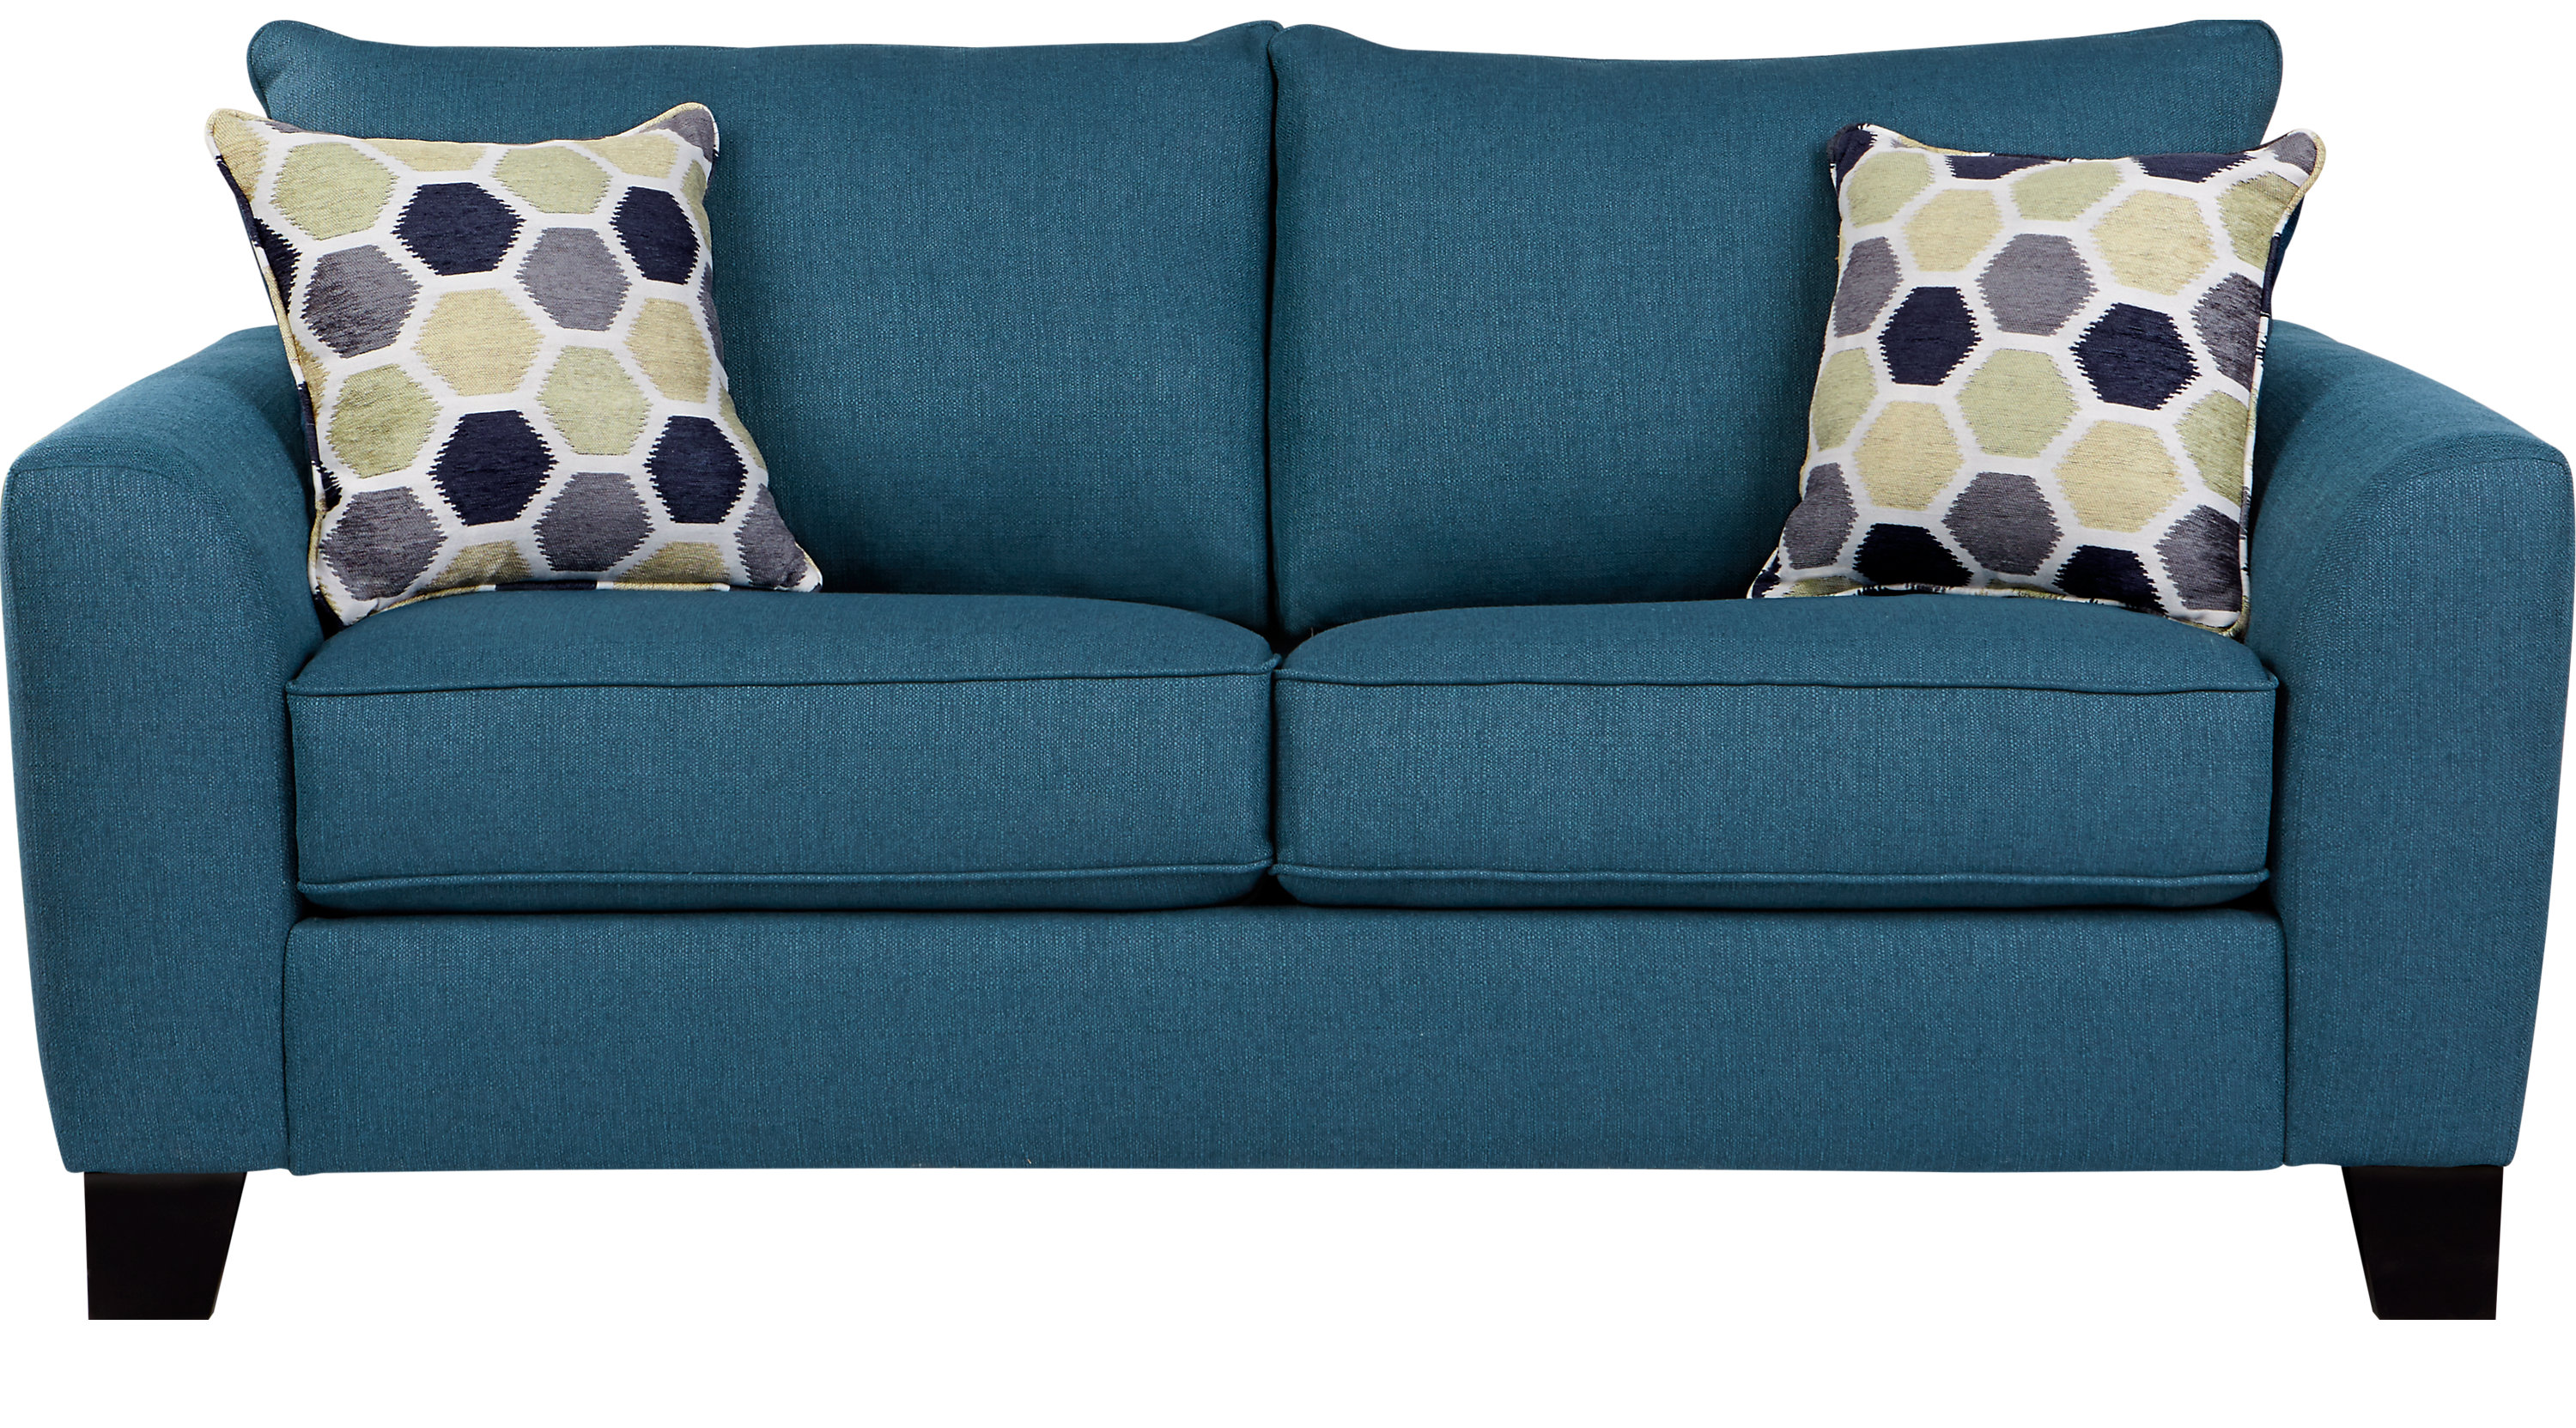 Bonita Springs Blue Sleeper Loveseat - Transitional, Textured